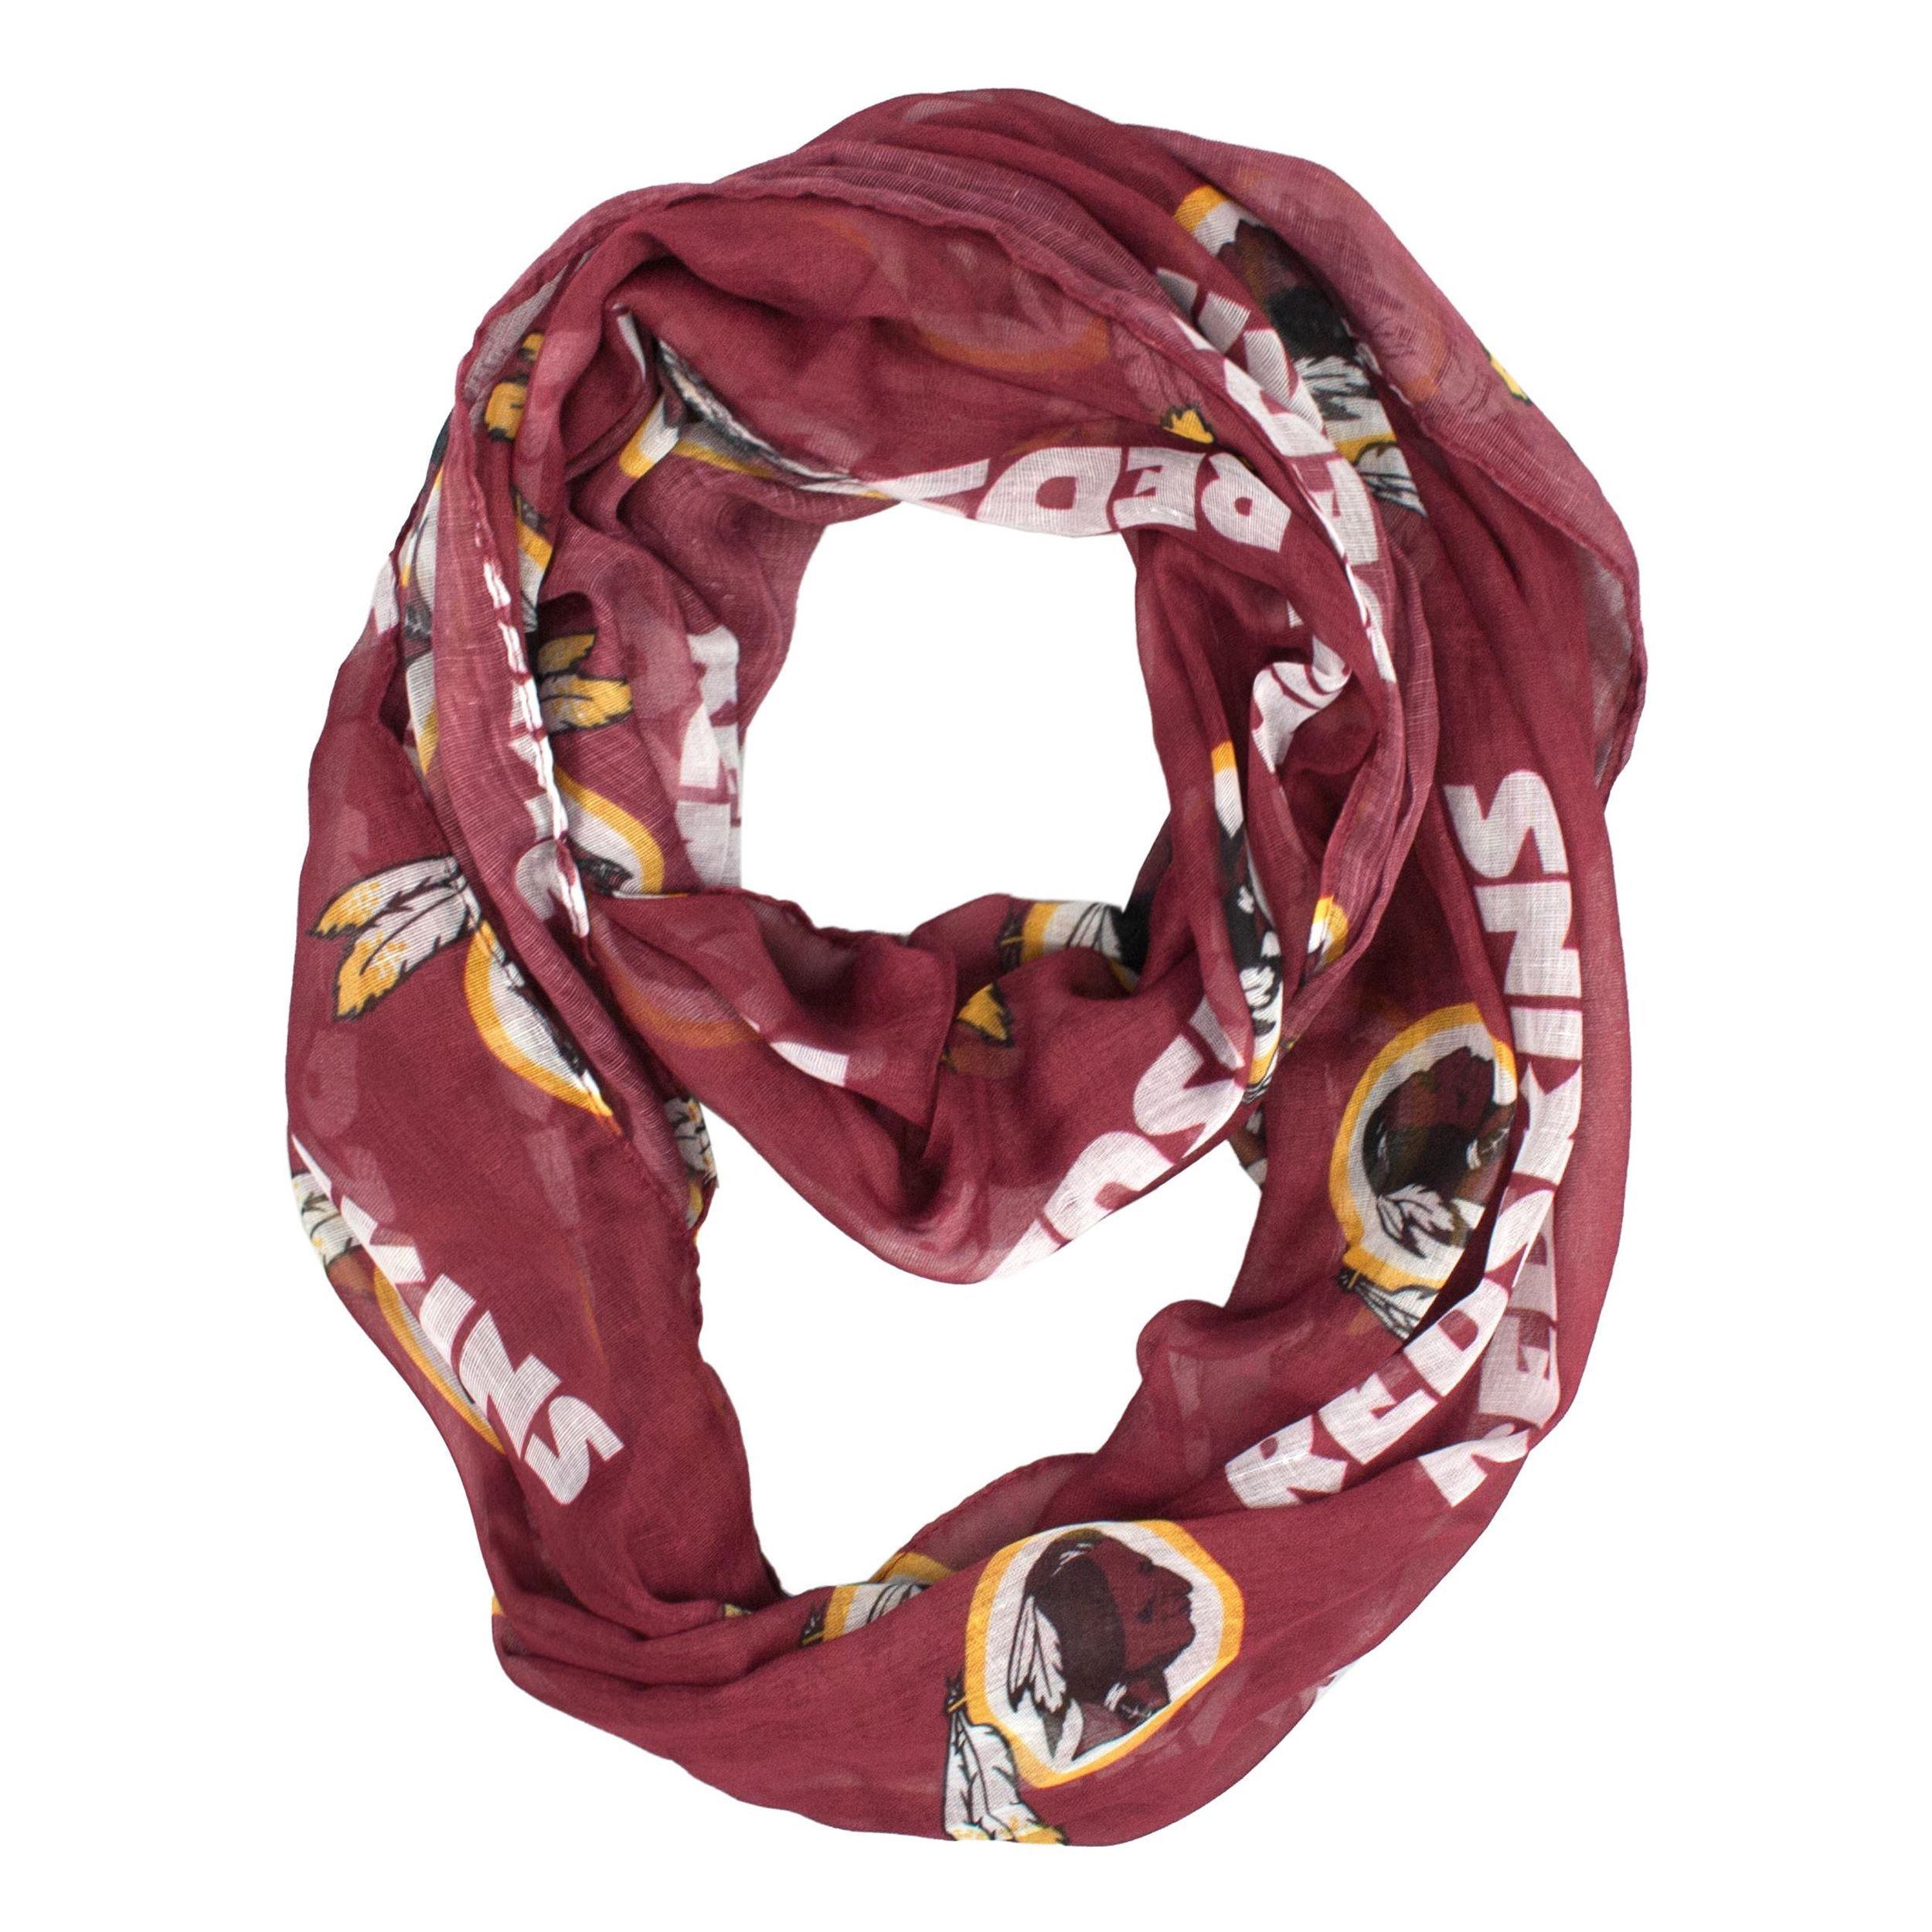 Little Earth Washington Redskins NFL Sheer Infinity Scarf